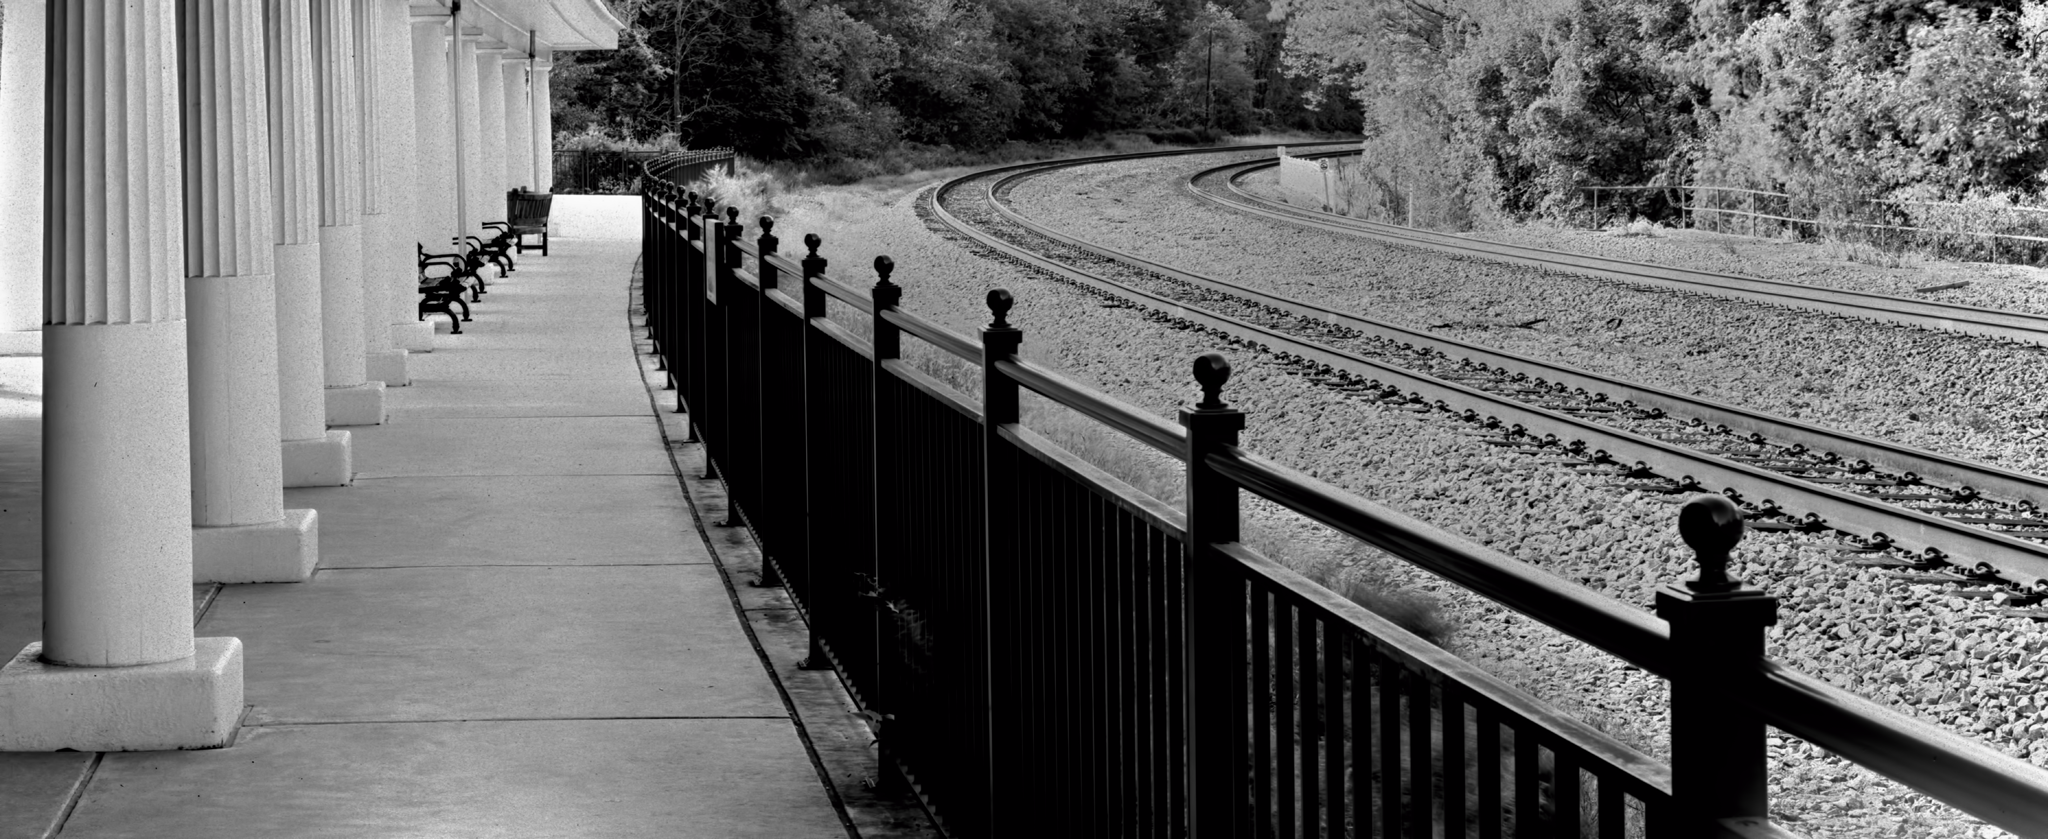 4x5_for_365_project_0289_Valley_Forge_NHS_Train_Station.png